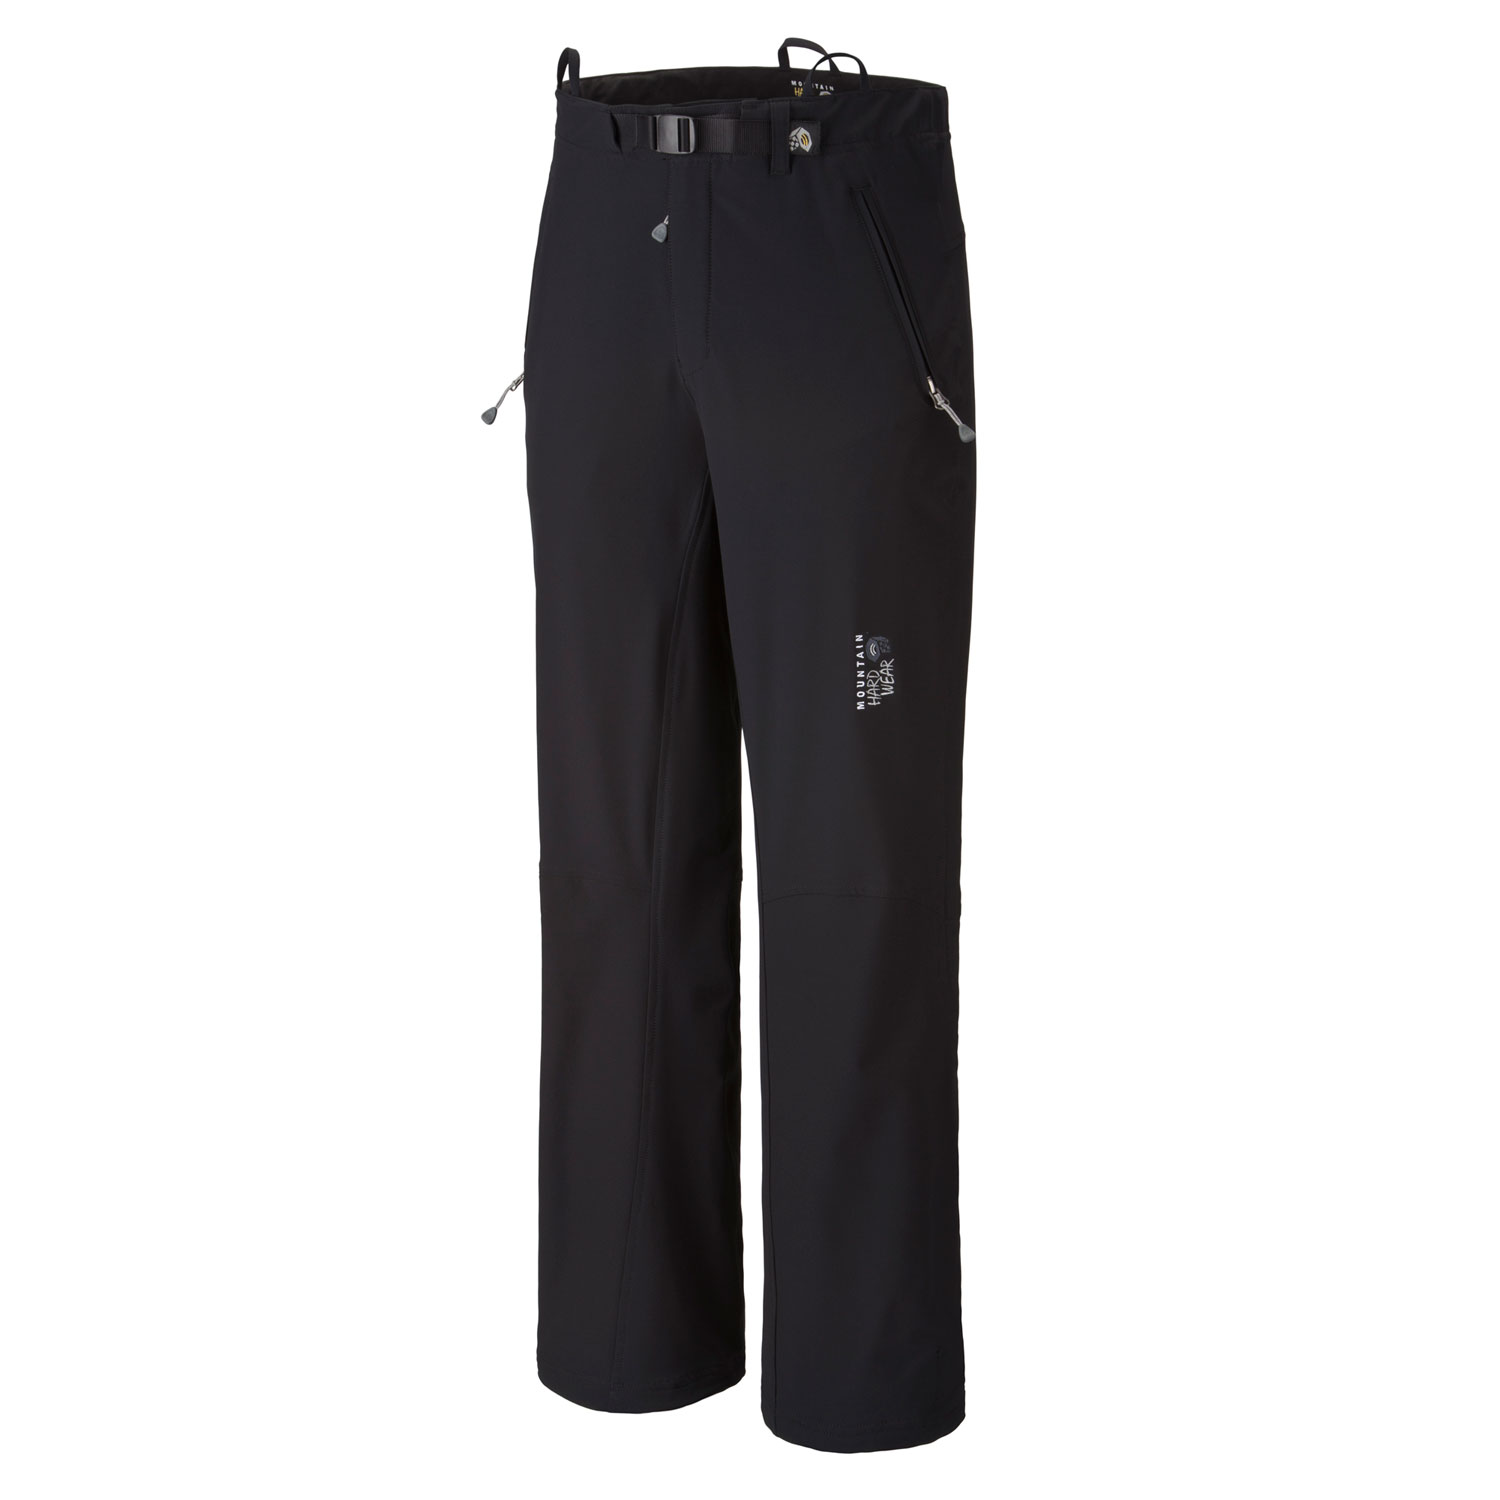 "Camp and Hike Be ready for anything the weather throws at you with these Mountain Hardwear Tanglewood Hiking Pants. Designed to keep you warm and dry when the snow falls on the slopes, trails, or anywhere else you go, these lightweight outer shell pants are made from a durable and water-resistant material known as Thornguard, and offer excellent rip resistance, as well. For further durability, the articulated knees also protect from damage, allowing the Tanglewood pants to be a long lasting investment well worth the money.  Avg weight: 16 oz; 445g    Inseam: 32""    Fabric: Thornguard (91% nylon, 9% Elastane     Suspender loops at waist    Zippered hand pockets    Ankle zips with snap for fit adjustments    Articulated knees    Micro-Chamois lined waist with an adjustable webbing belt for a comfortable chafe-free fit - $90.95"